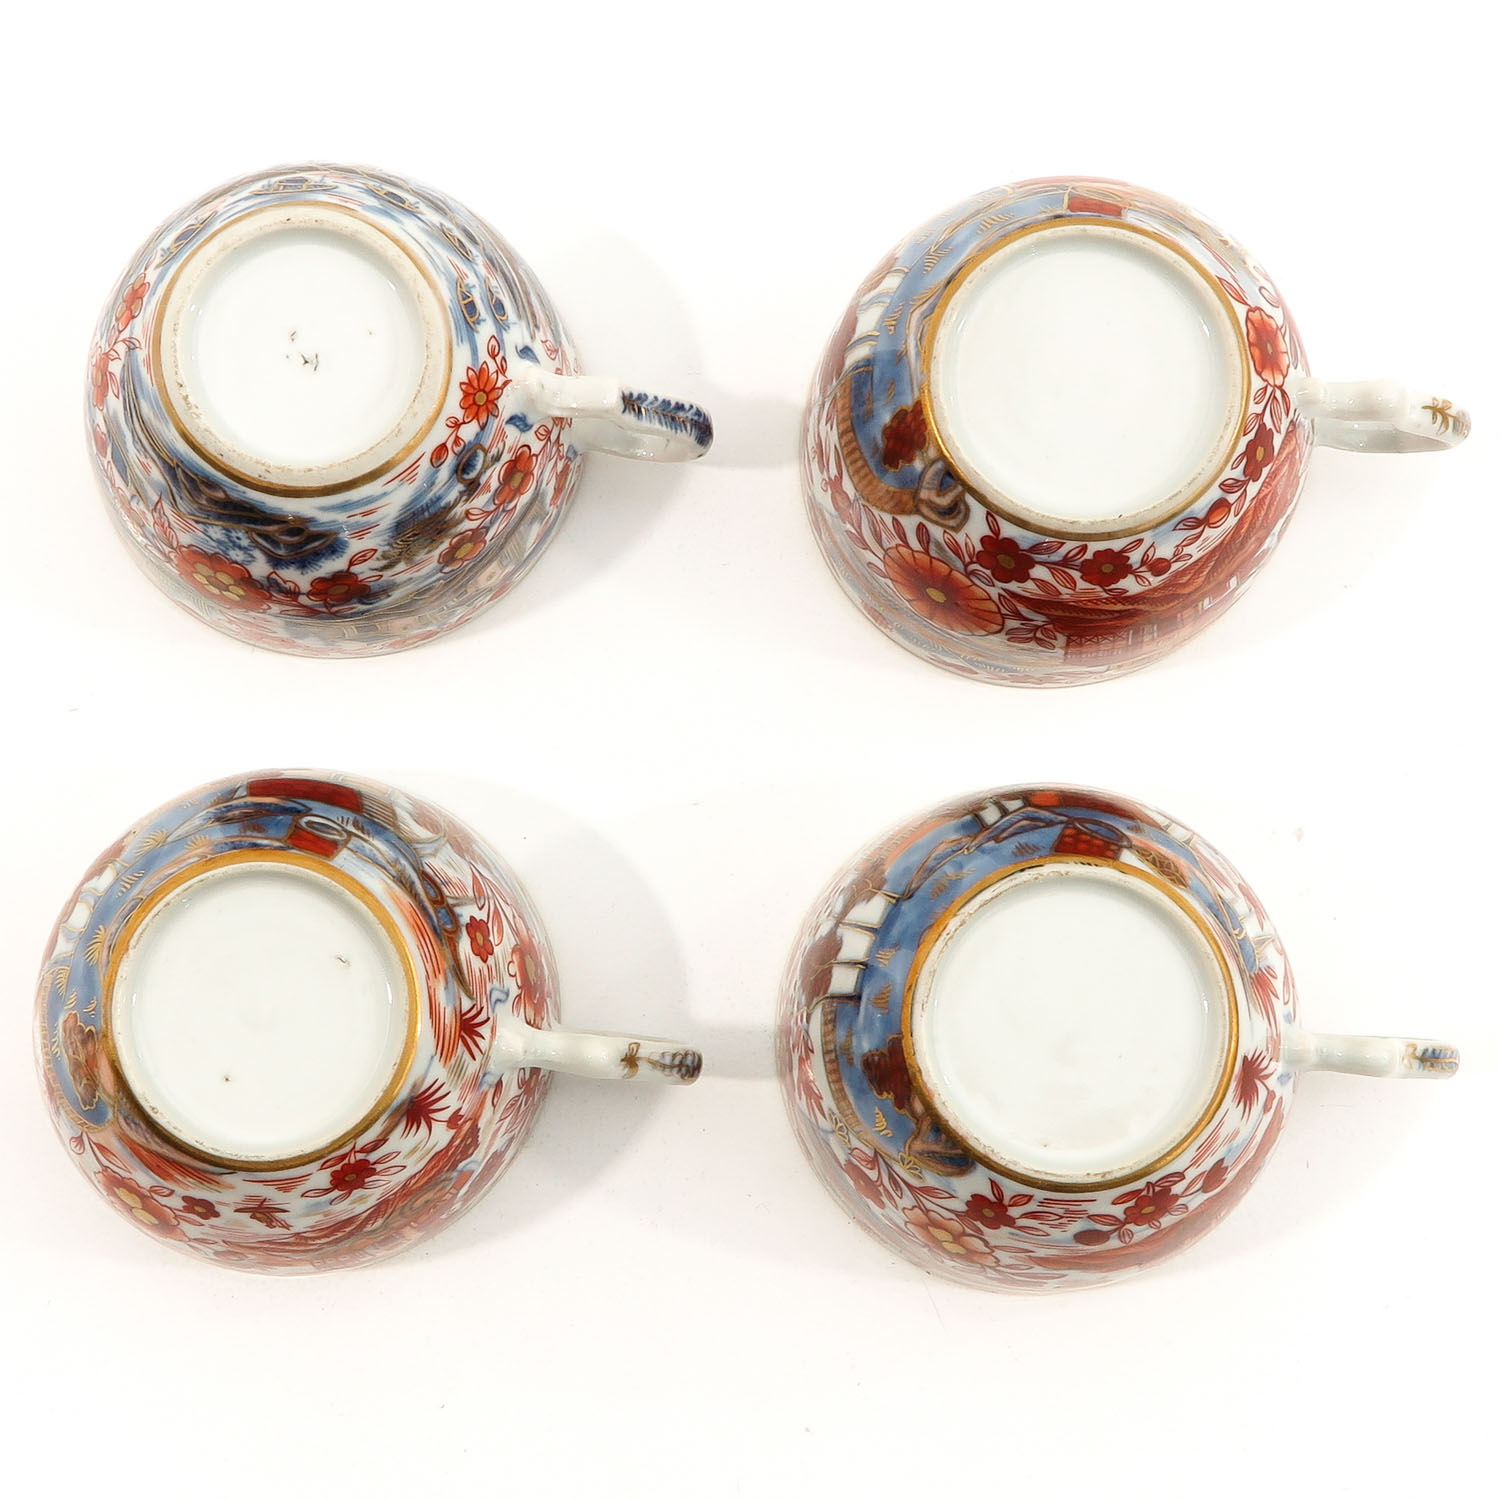 4 Imari Cups and Saucers - Image 6 of 10